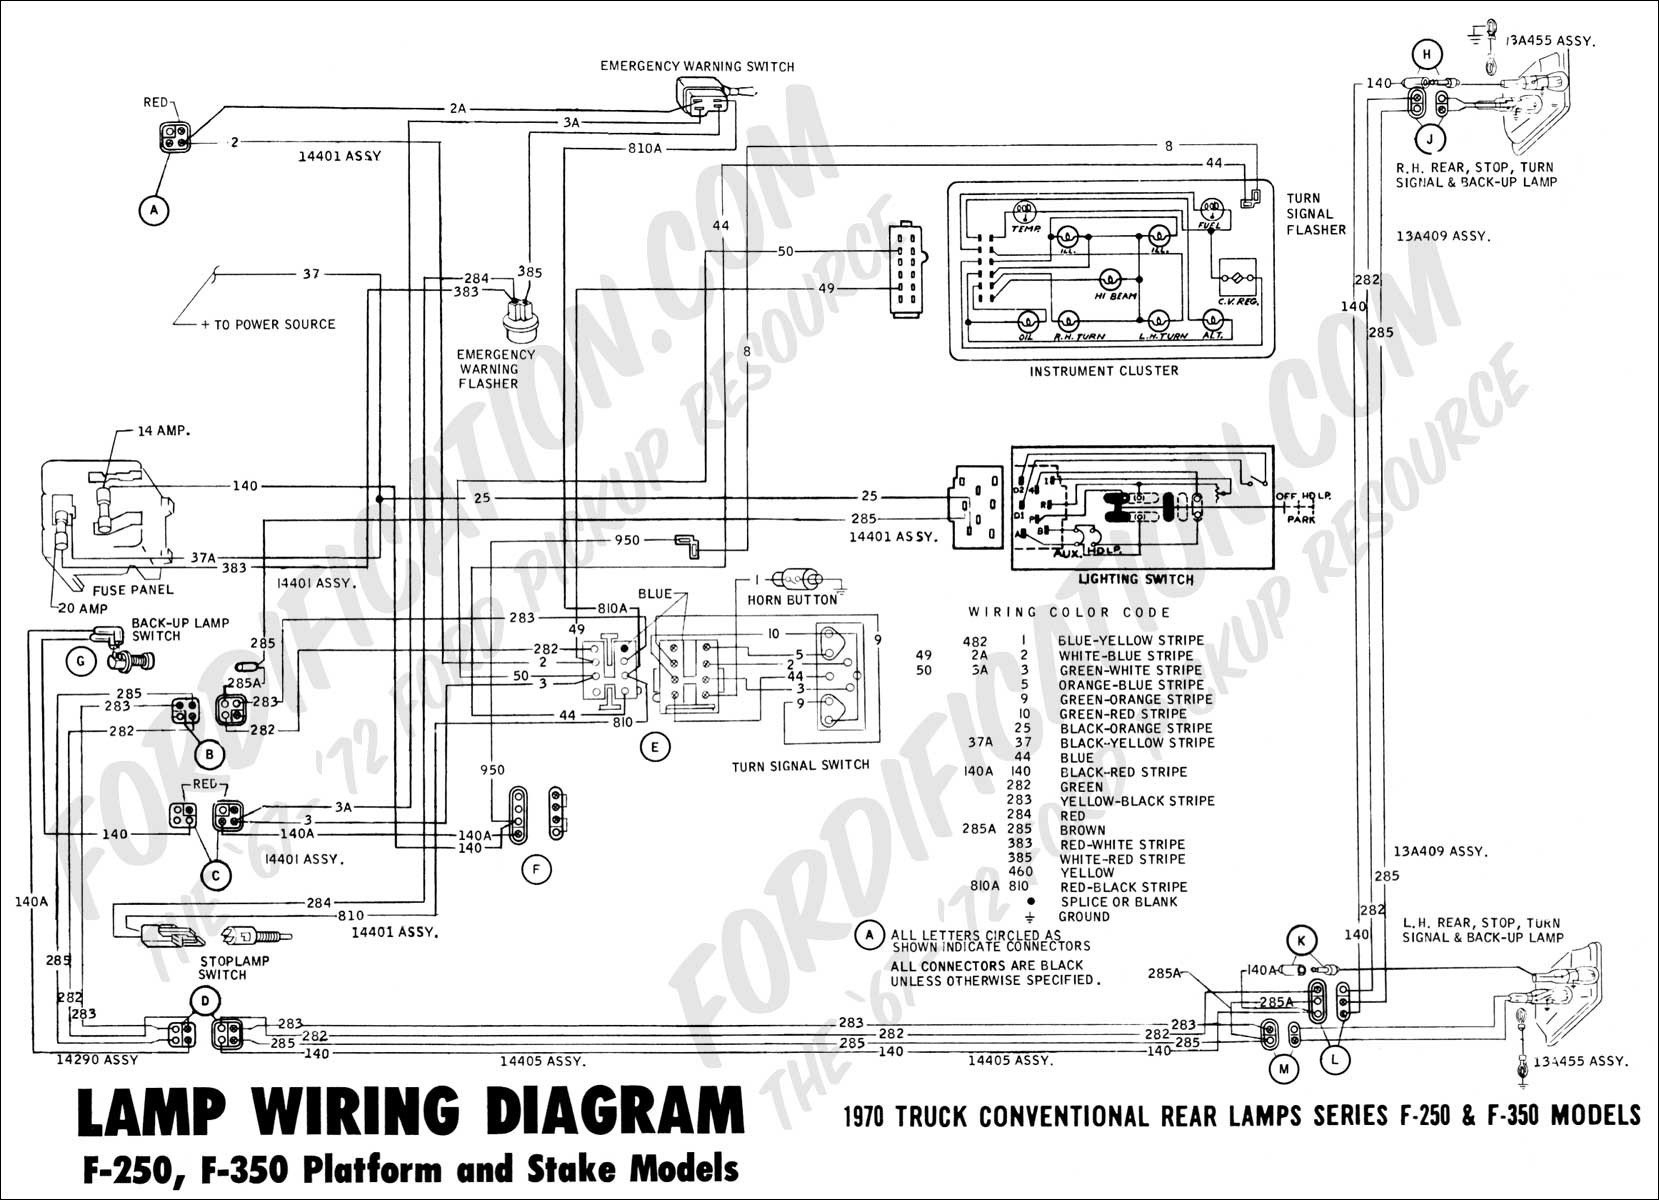 1982 Corvette Tail Light Wiring Diagram Great Design Of 2000 F350 Schematics Rh Leonardofaccoeditore Com 1984